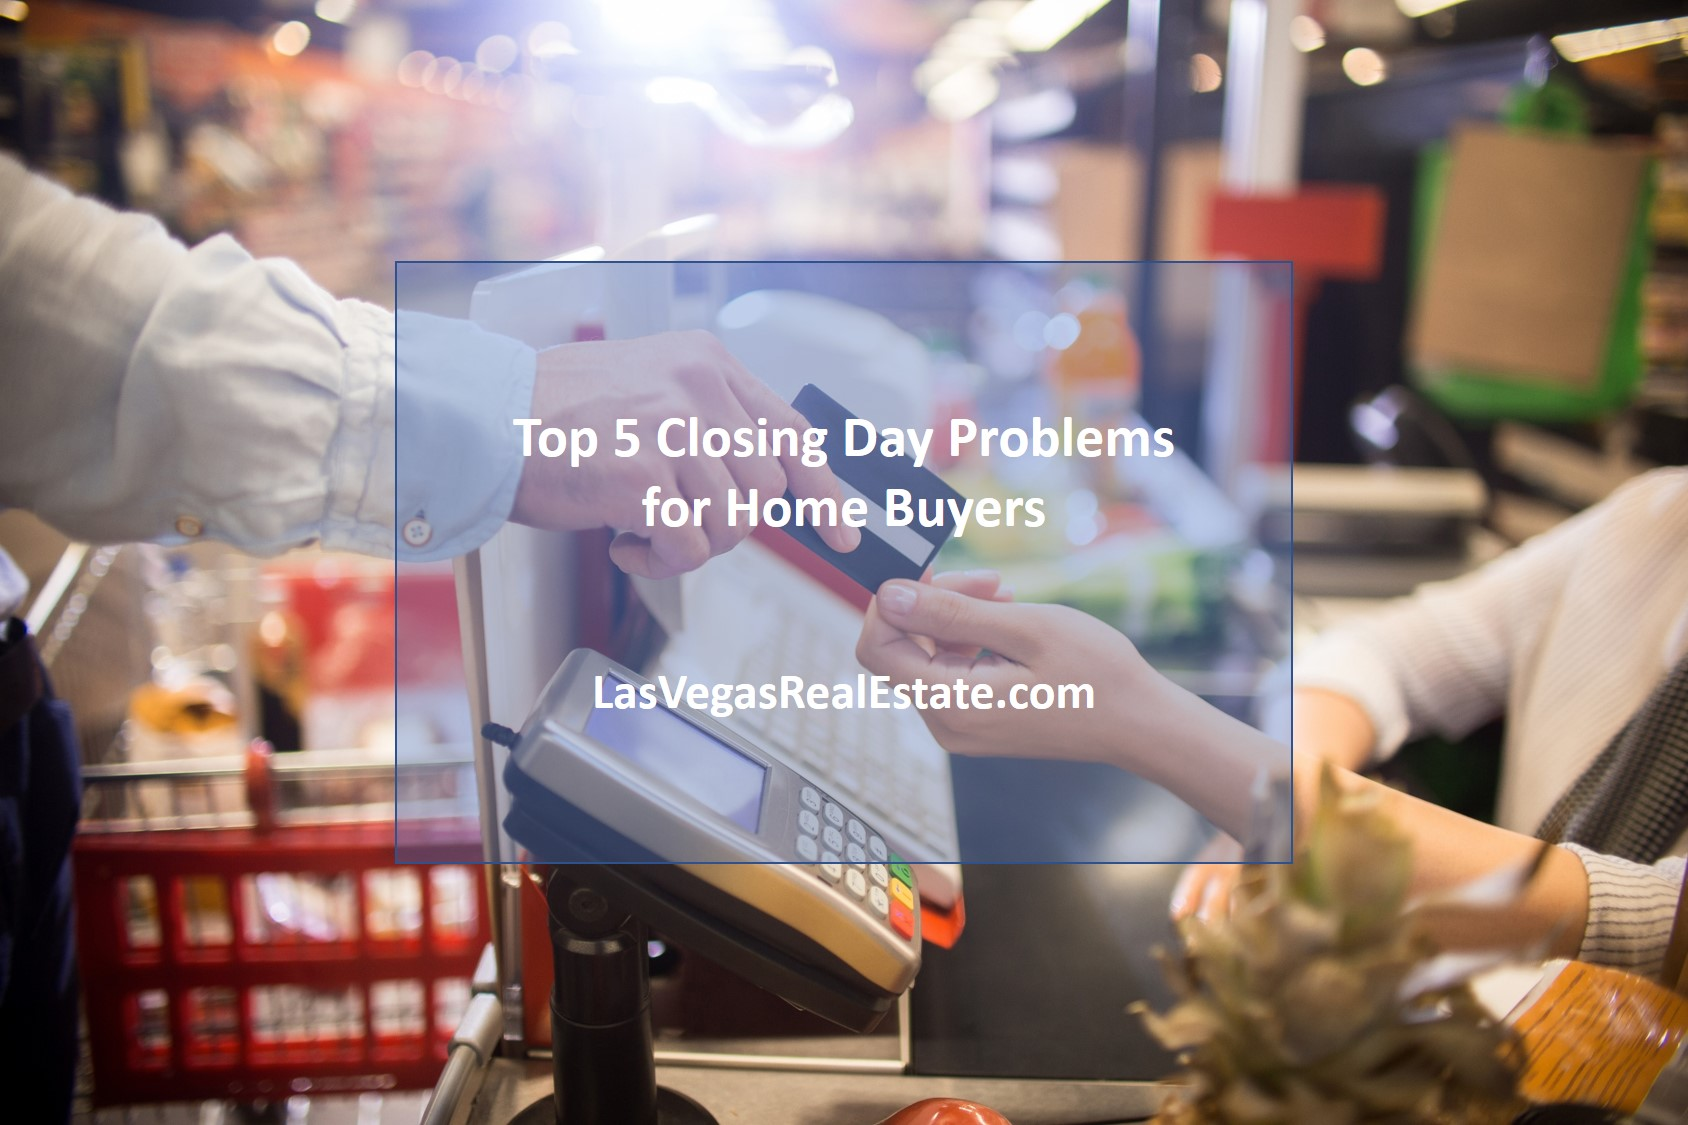 Top 5 Closing Day Problems for Home Buyers - LasVegasRealEstate.com